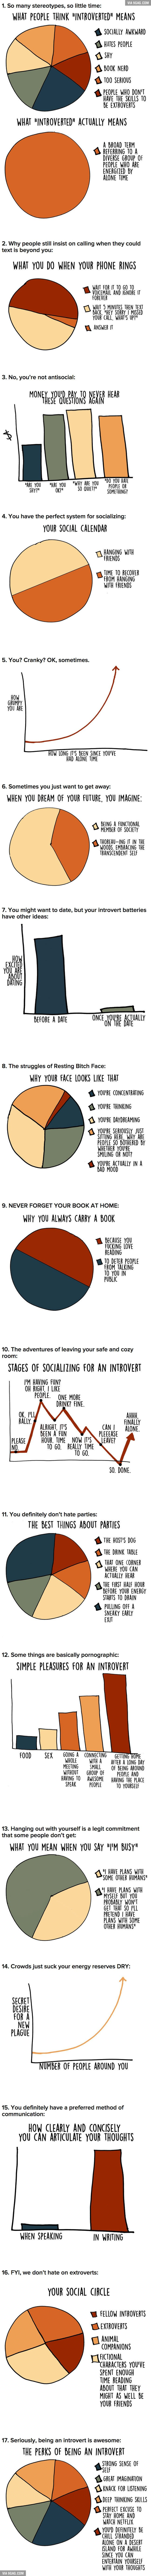 17 Graphs That Will Speak To You If You're An Introvert